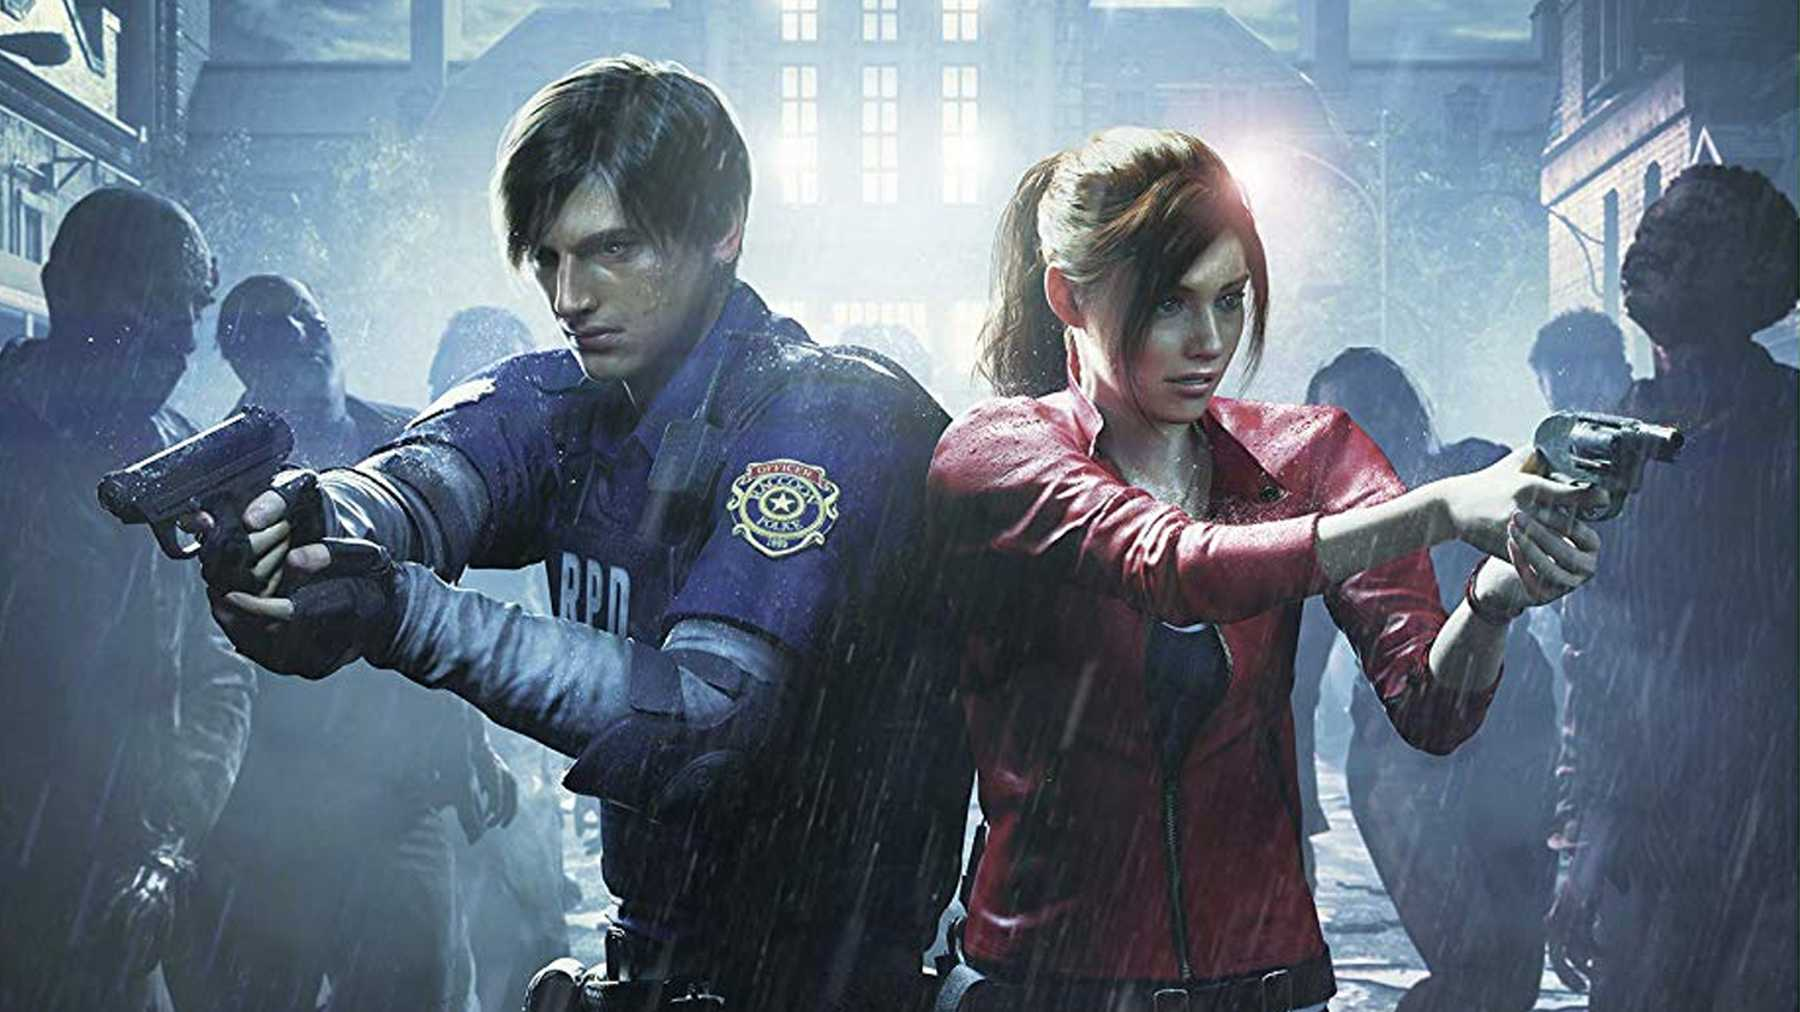 resident evil 2 claire and leon relationship